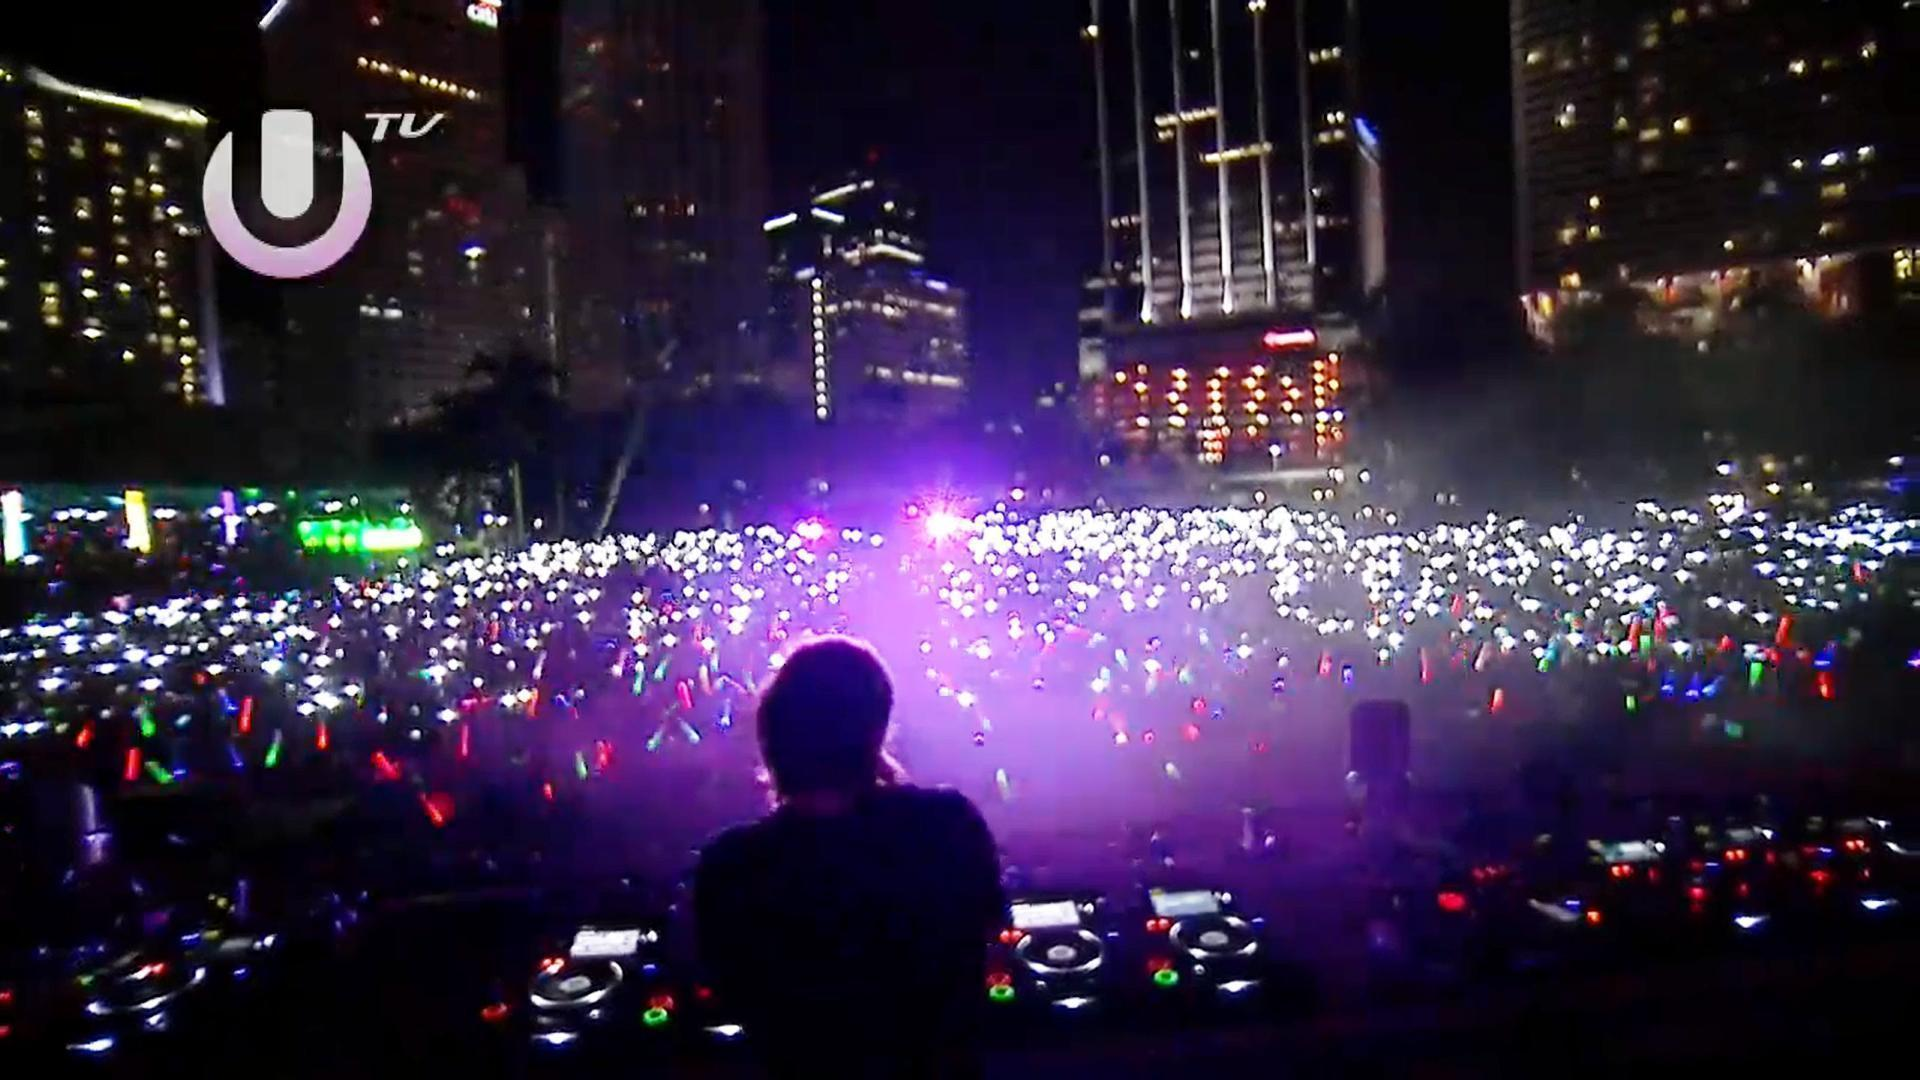 Download Ultra Music Festival Wallpaper Hd Gallery: Ultra Music Wallpapers